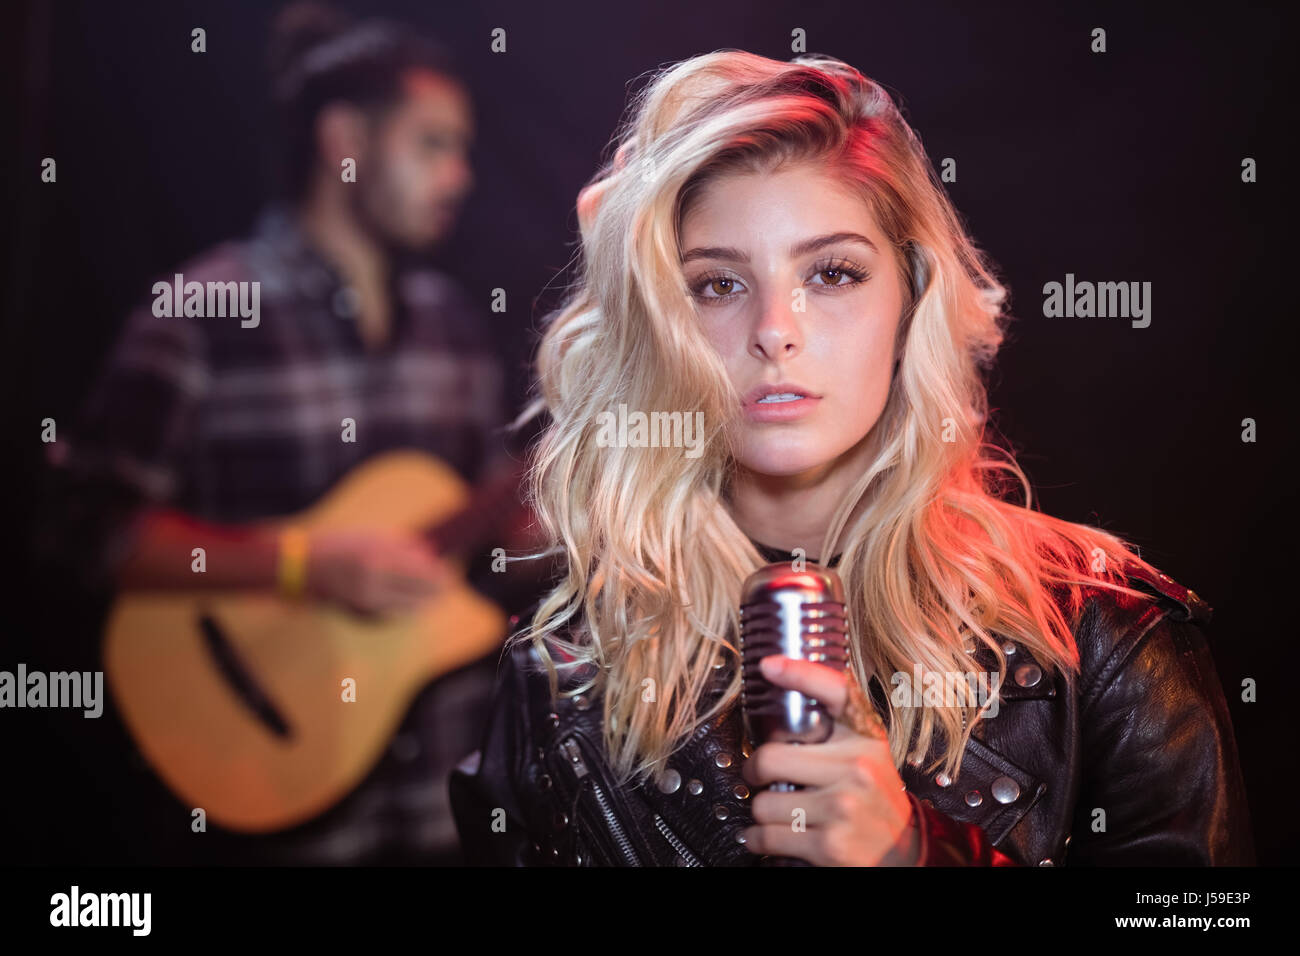 Portrait of young female singer holding mic at nightclub during music festival - Stock Image